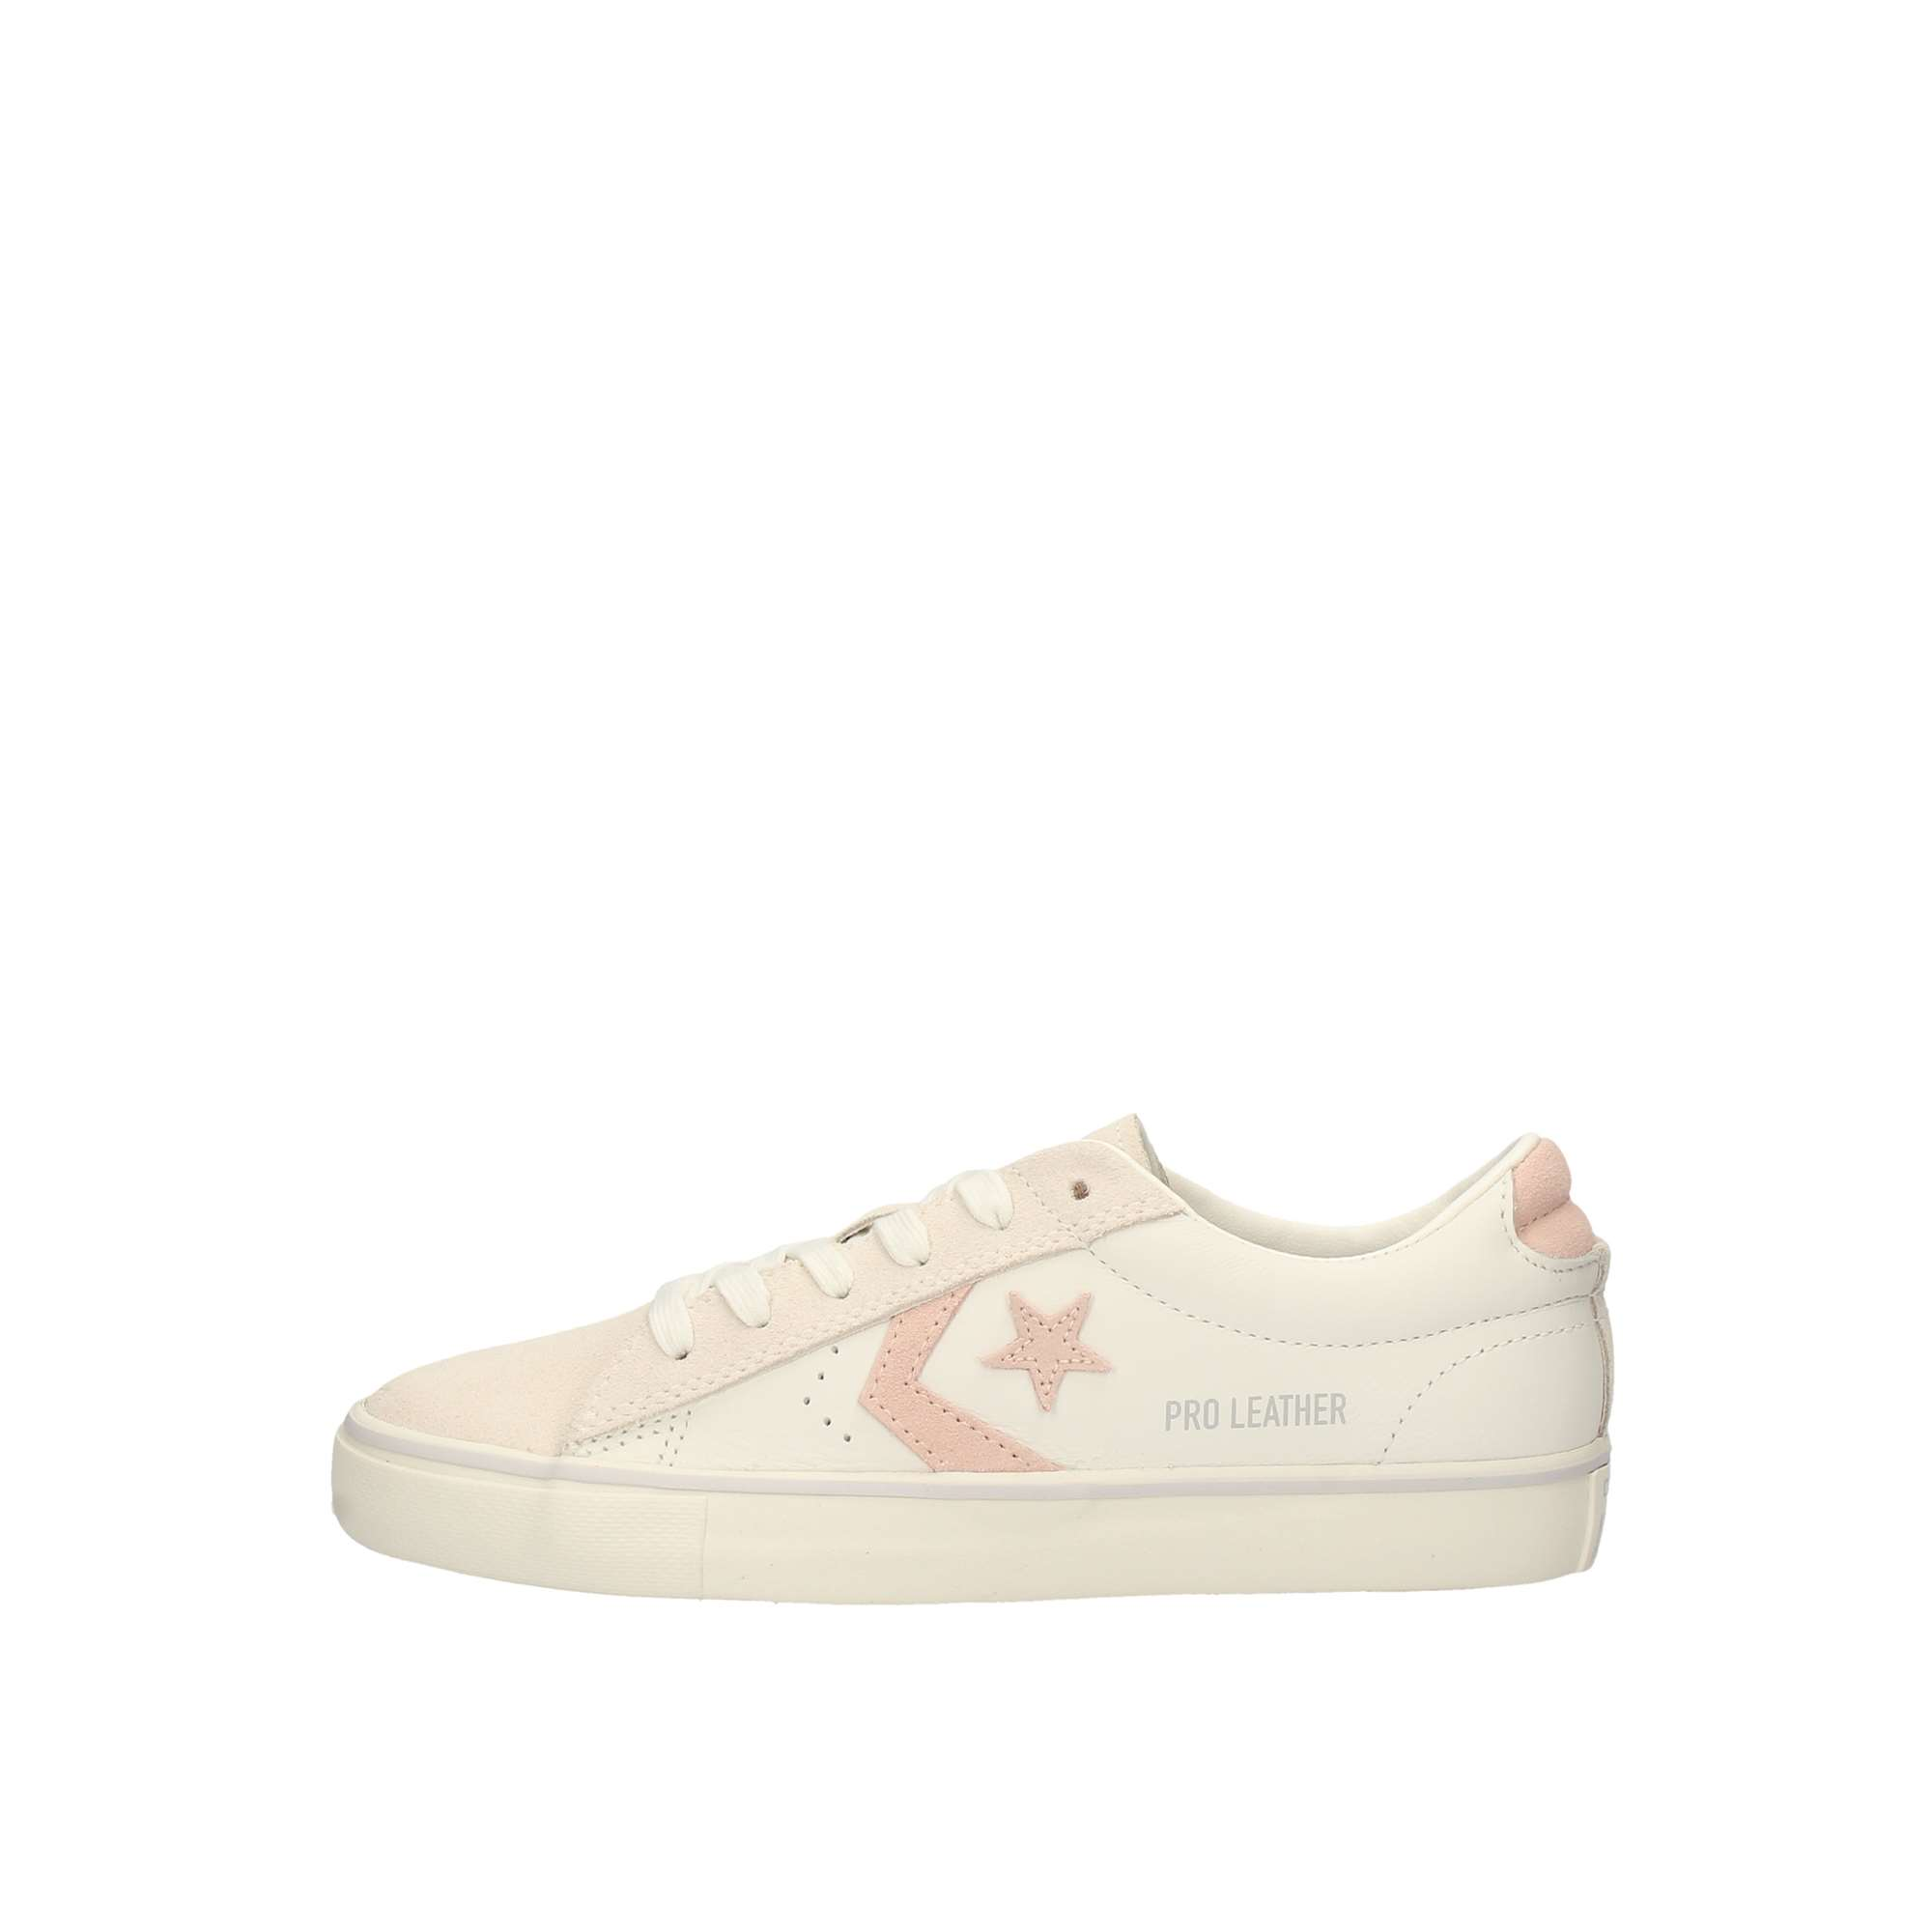 Alta qualit SNEAKERS Donna CONVERSE 160926C Primavera/Estate